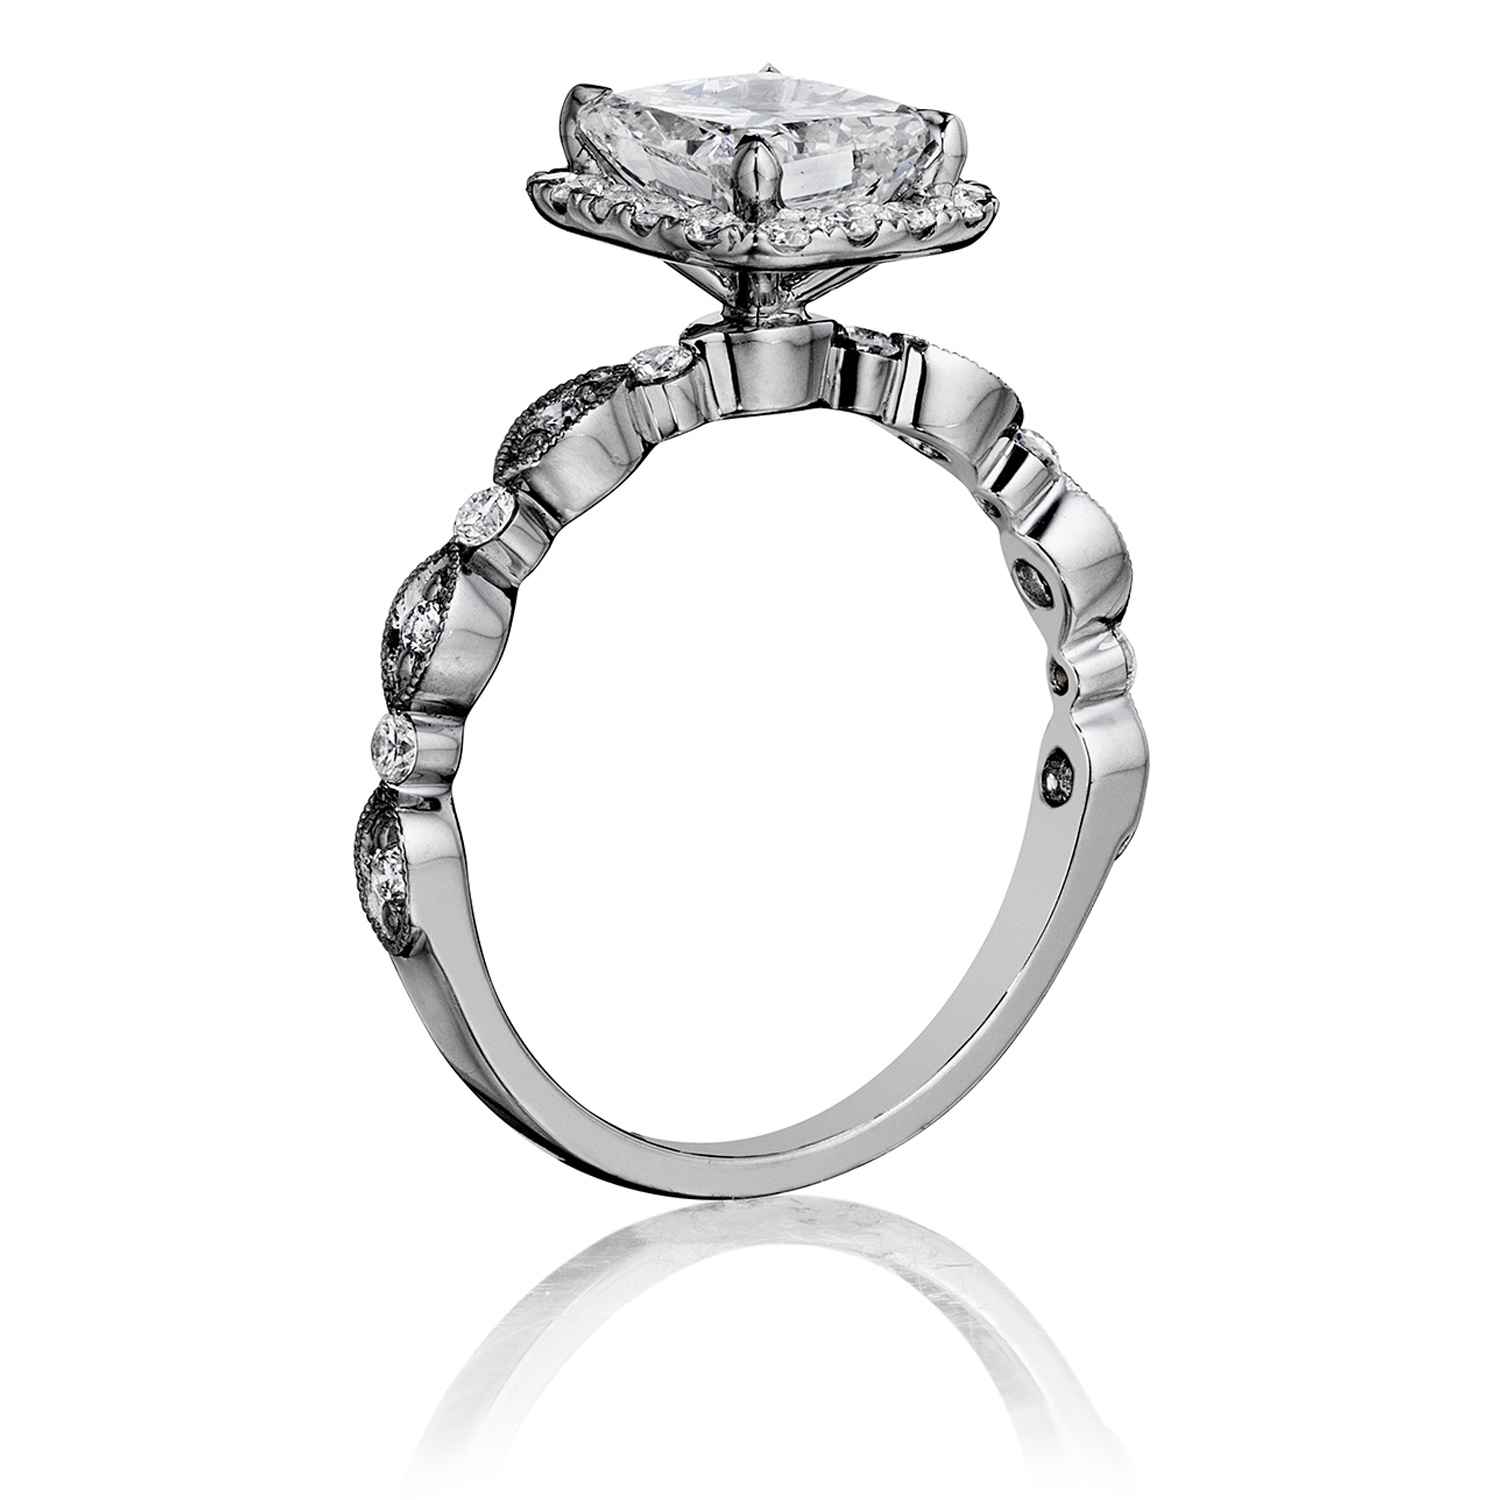 Henri Daussi AGC Cushion Halo Floral Inspired Antique Diamond Engagement Ring Alternative View 1